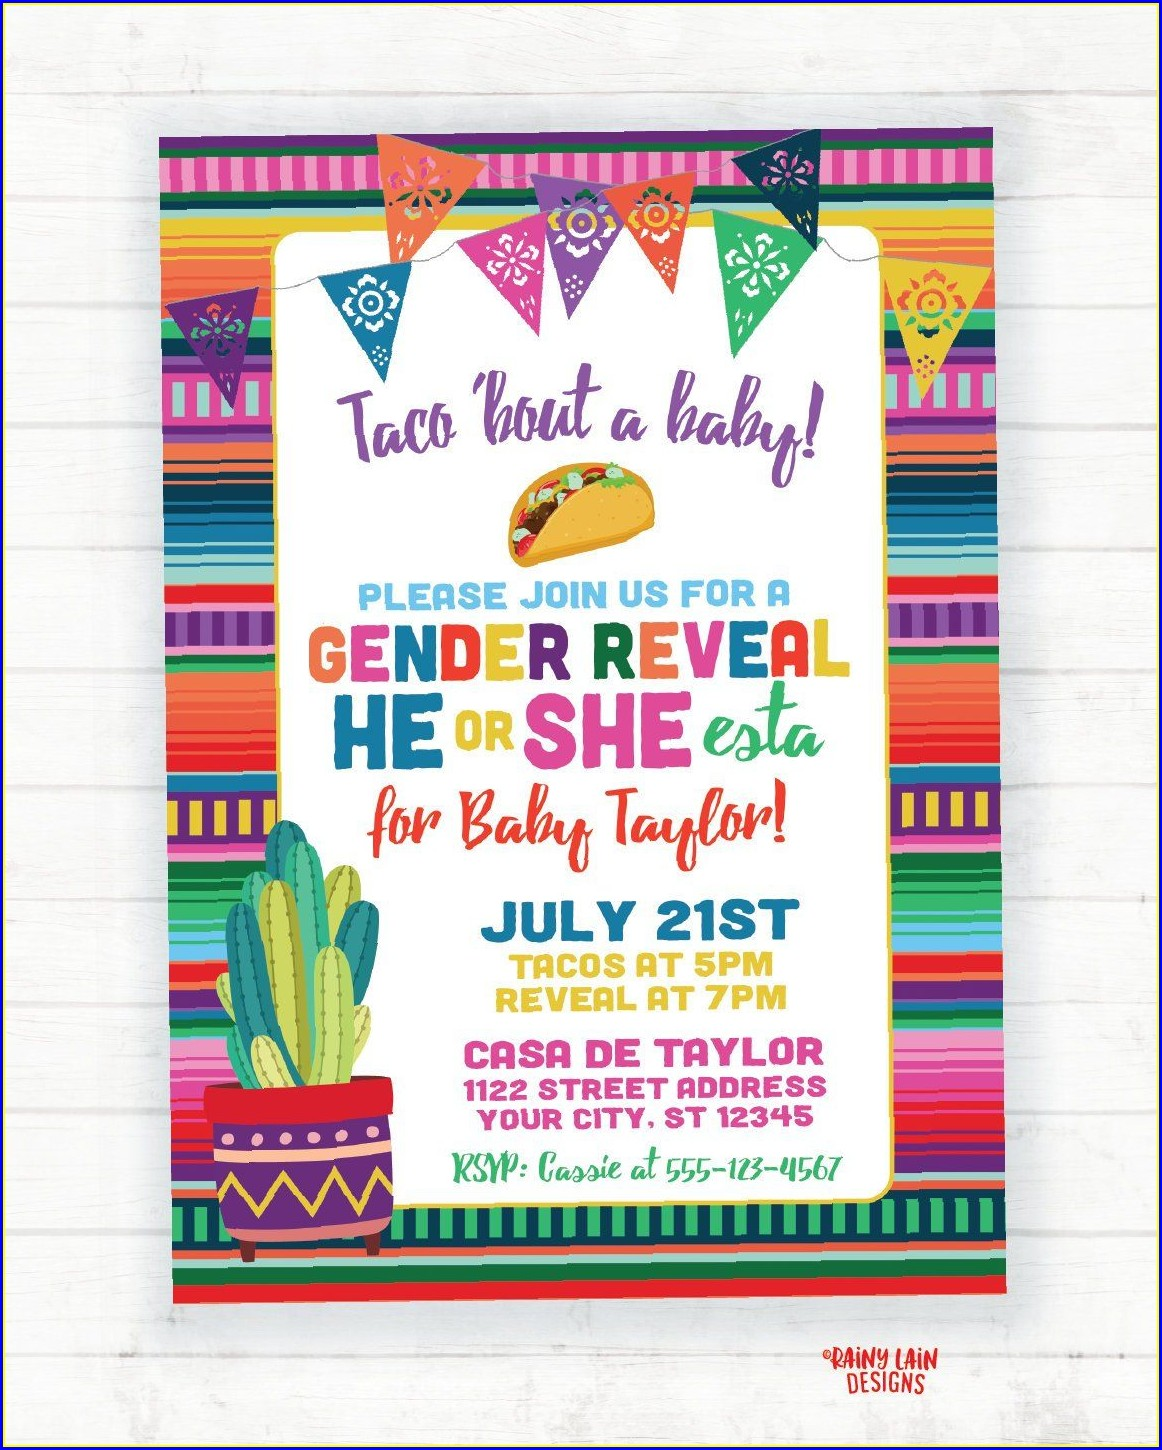 Free Printable Taco Bout A Baby Invitations